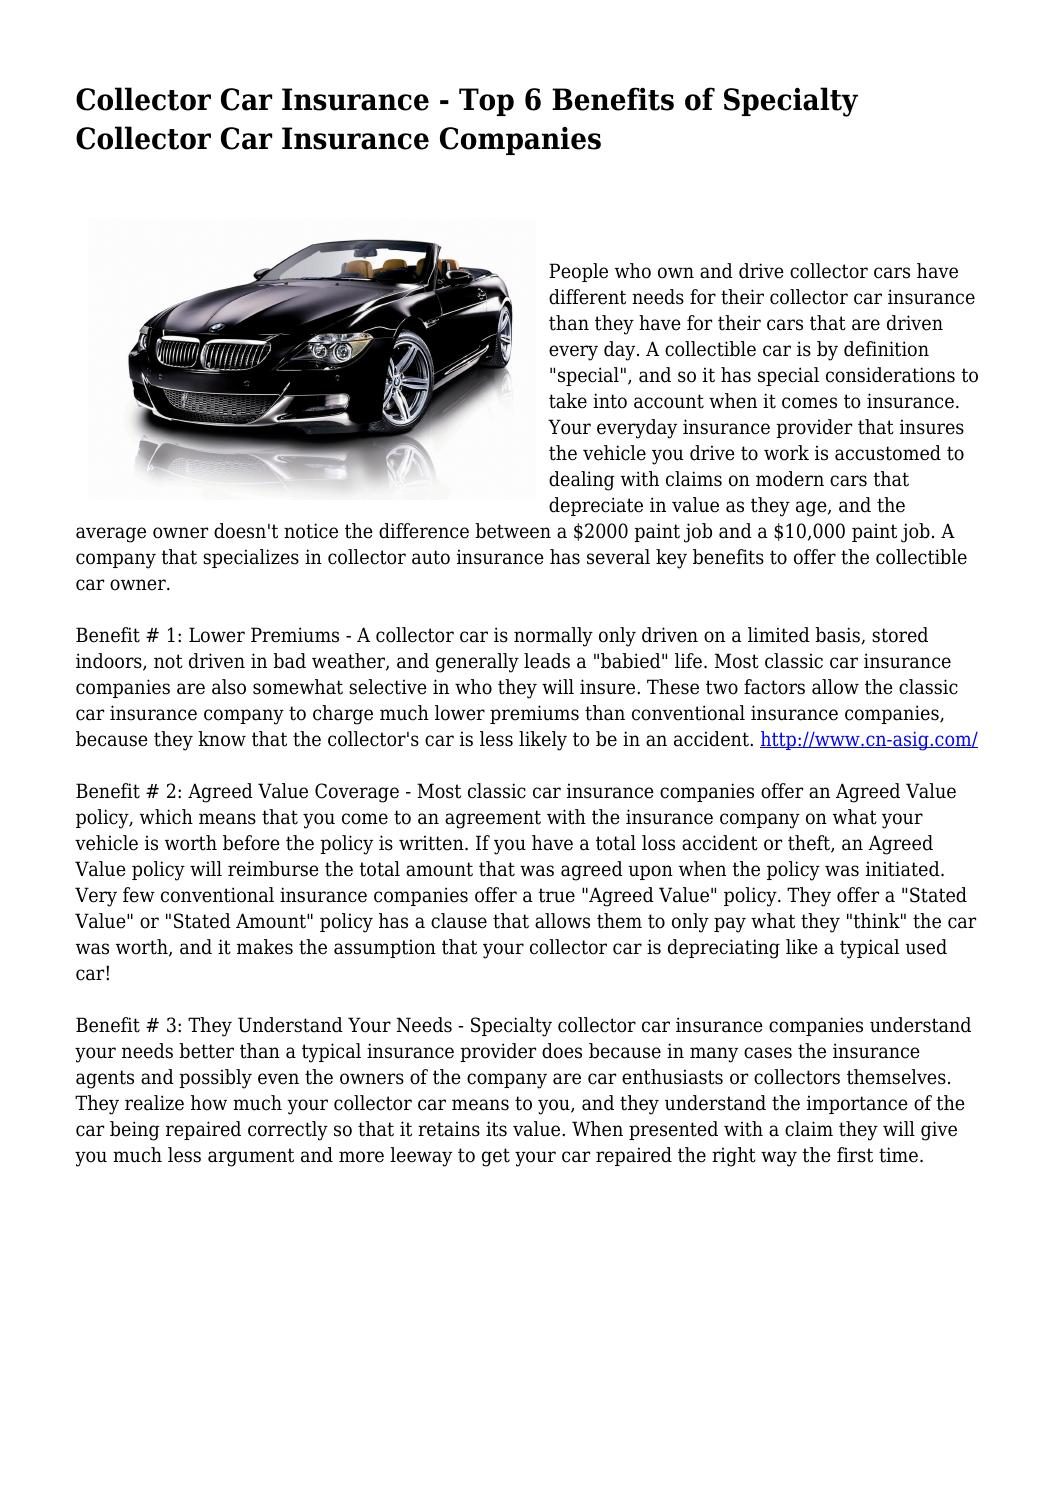 Collector Car Insurance Top 6 Benefits Of Specialty Collector Car Insurance Companies By Car1nsuranceonl1ne Issuu